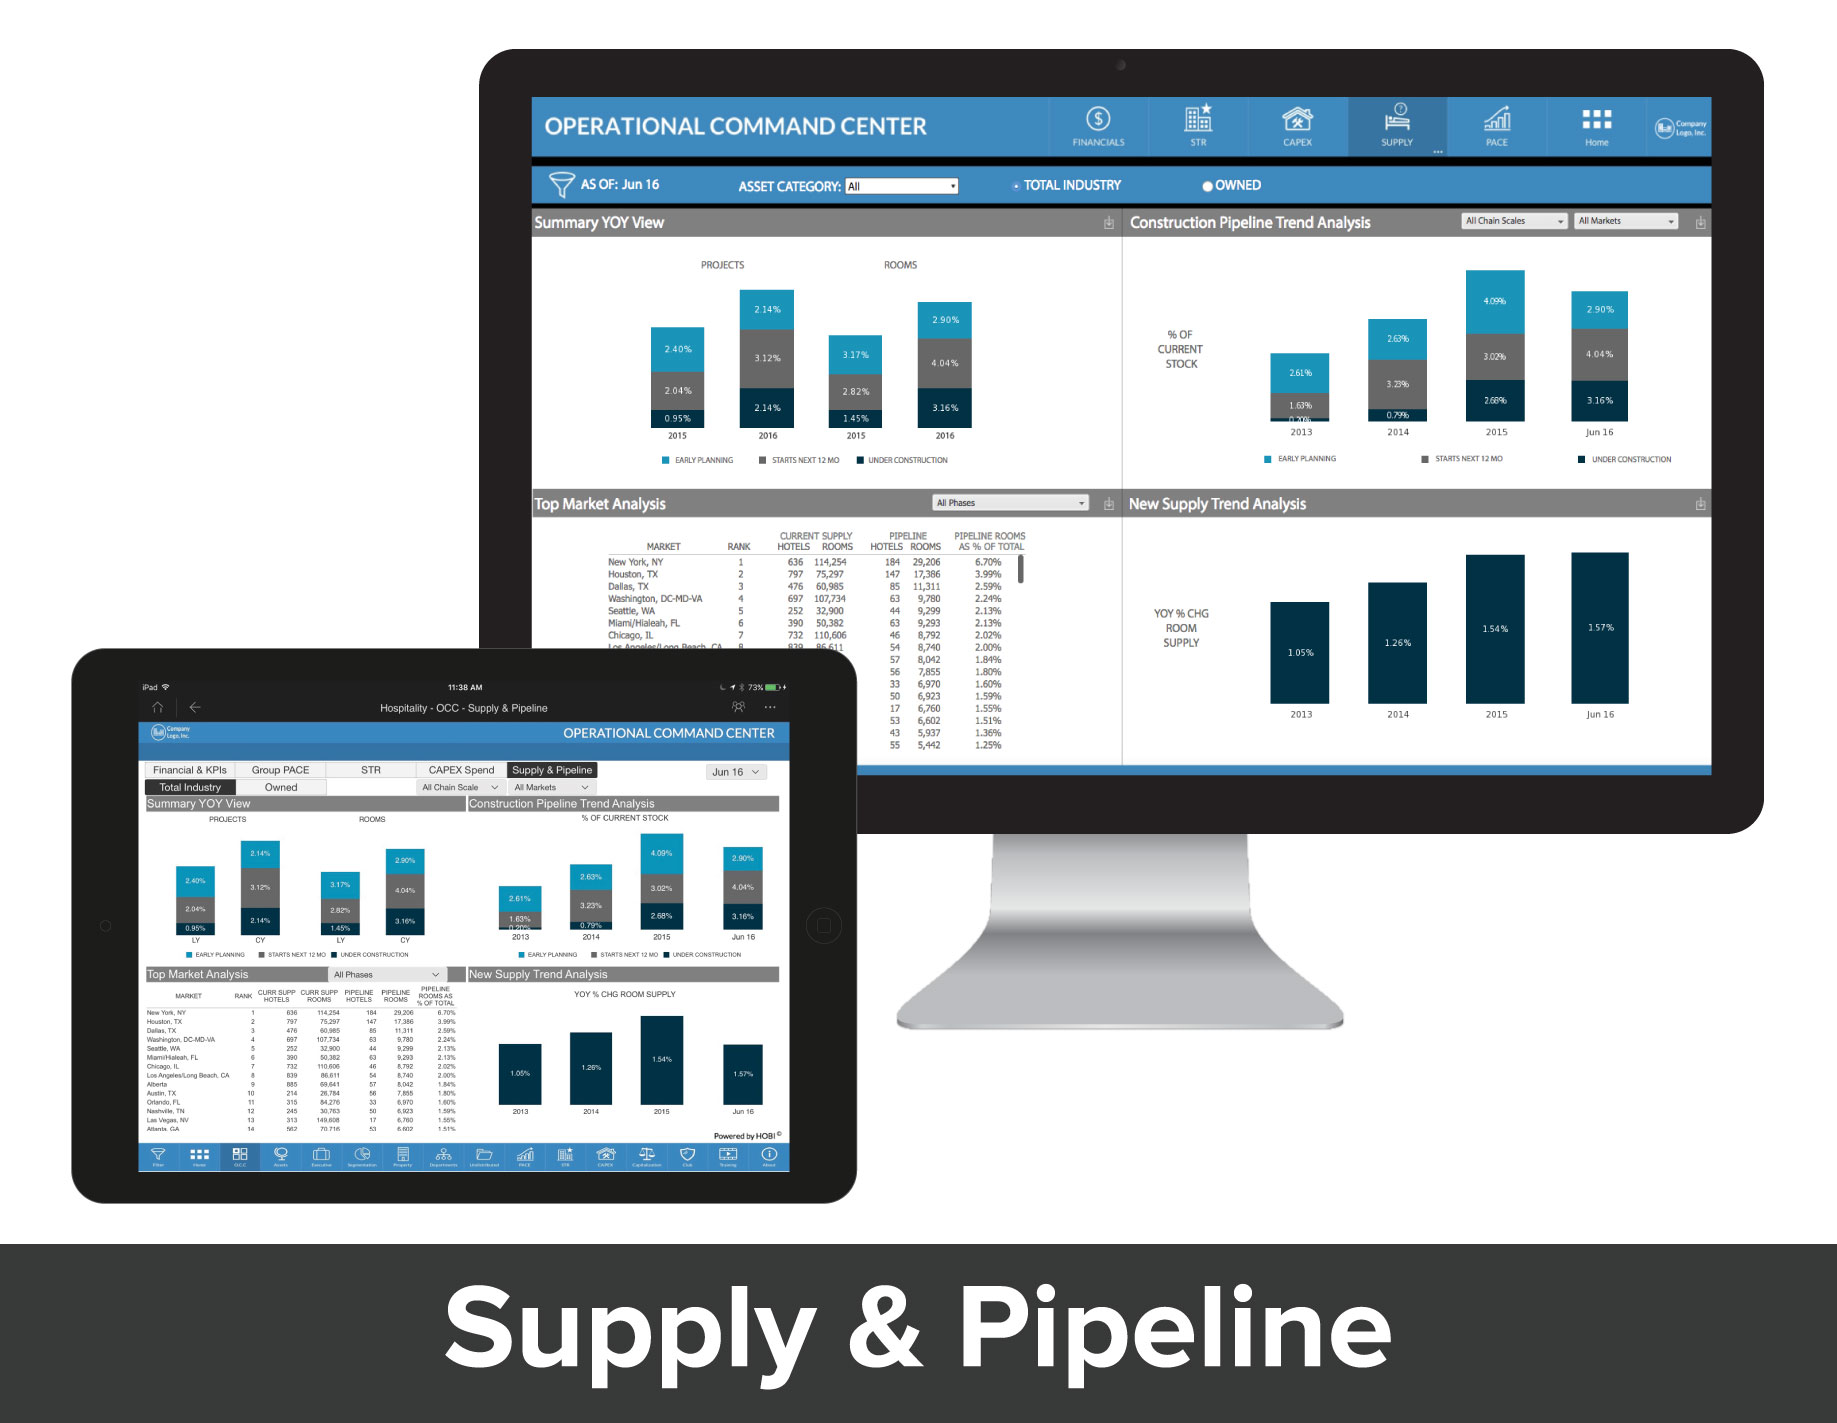 Gallery_10_Supply-&-Pipeline.jpg